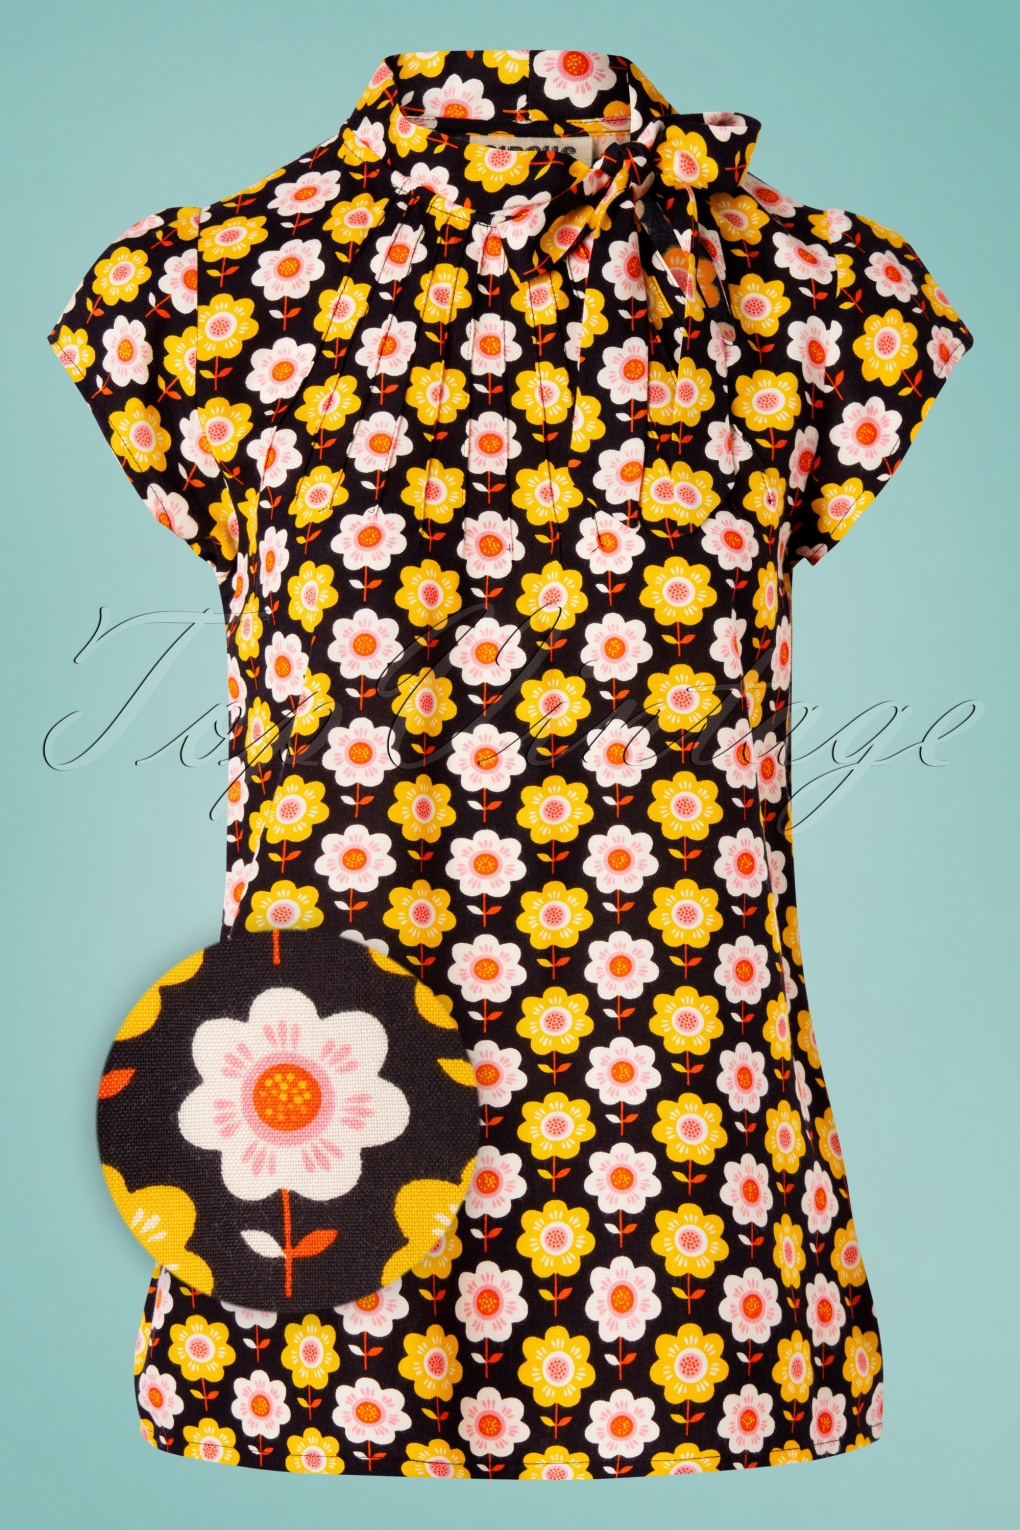 60s Shirts, T-shirts, Blouses, Hippie Shirts 60s Anna Wallflower Top in Black £41.76 AT vintagedancer.com